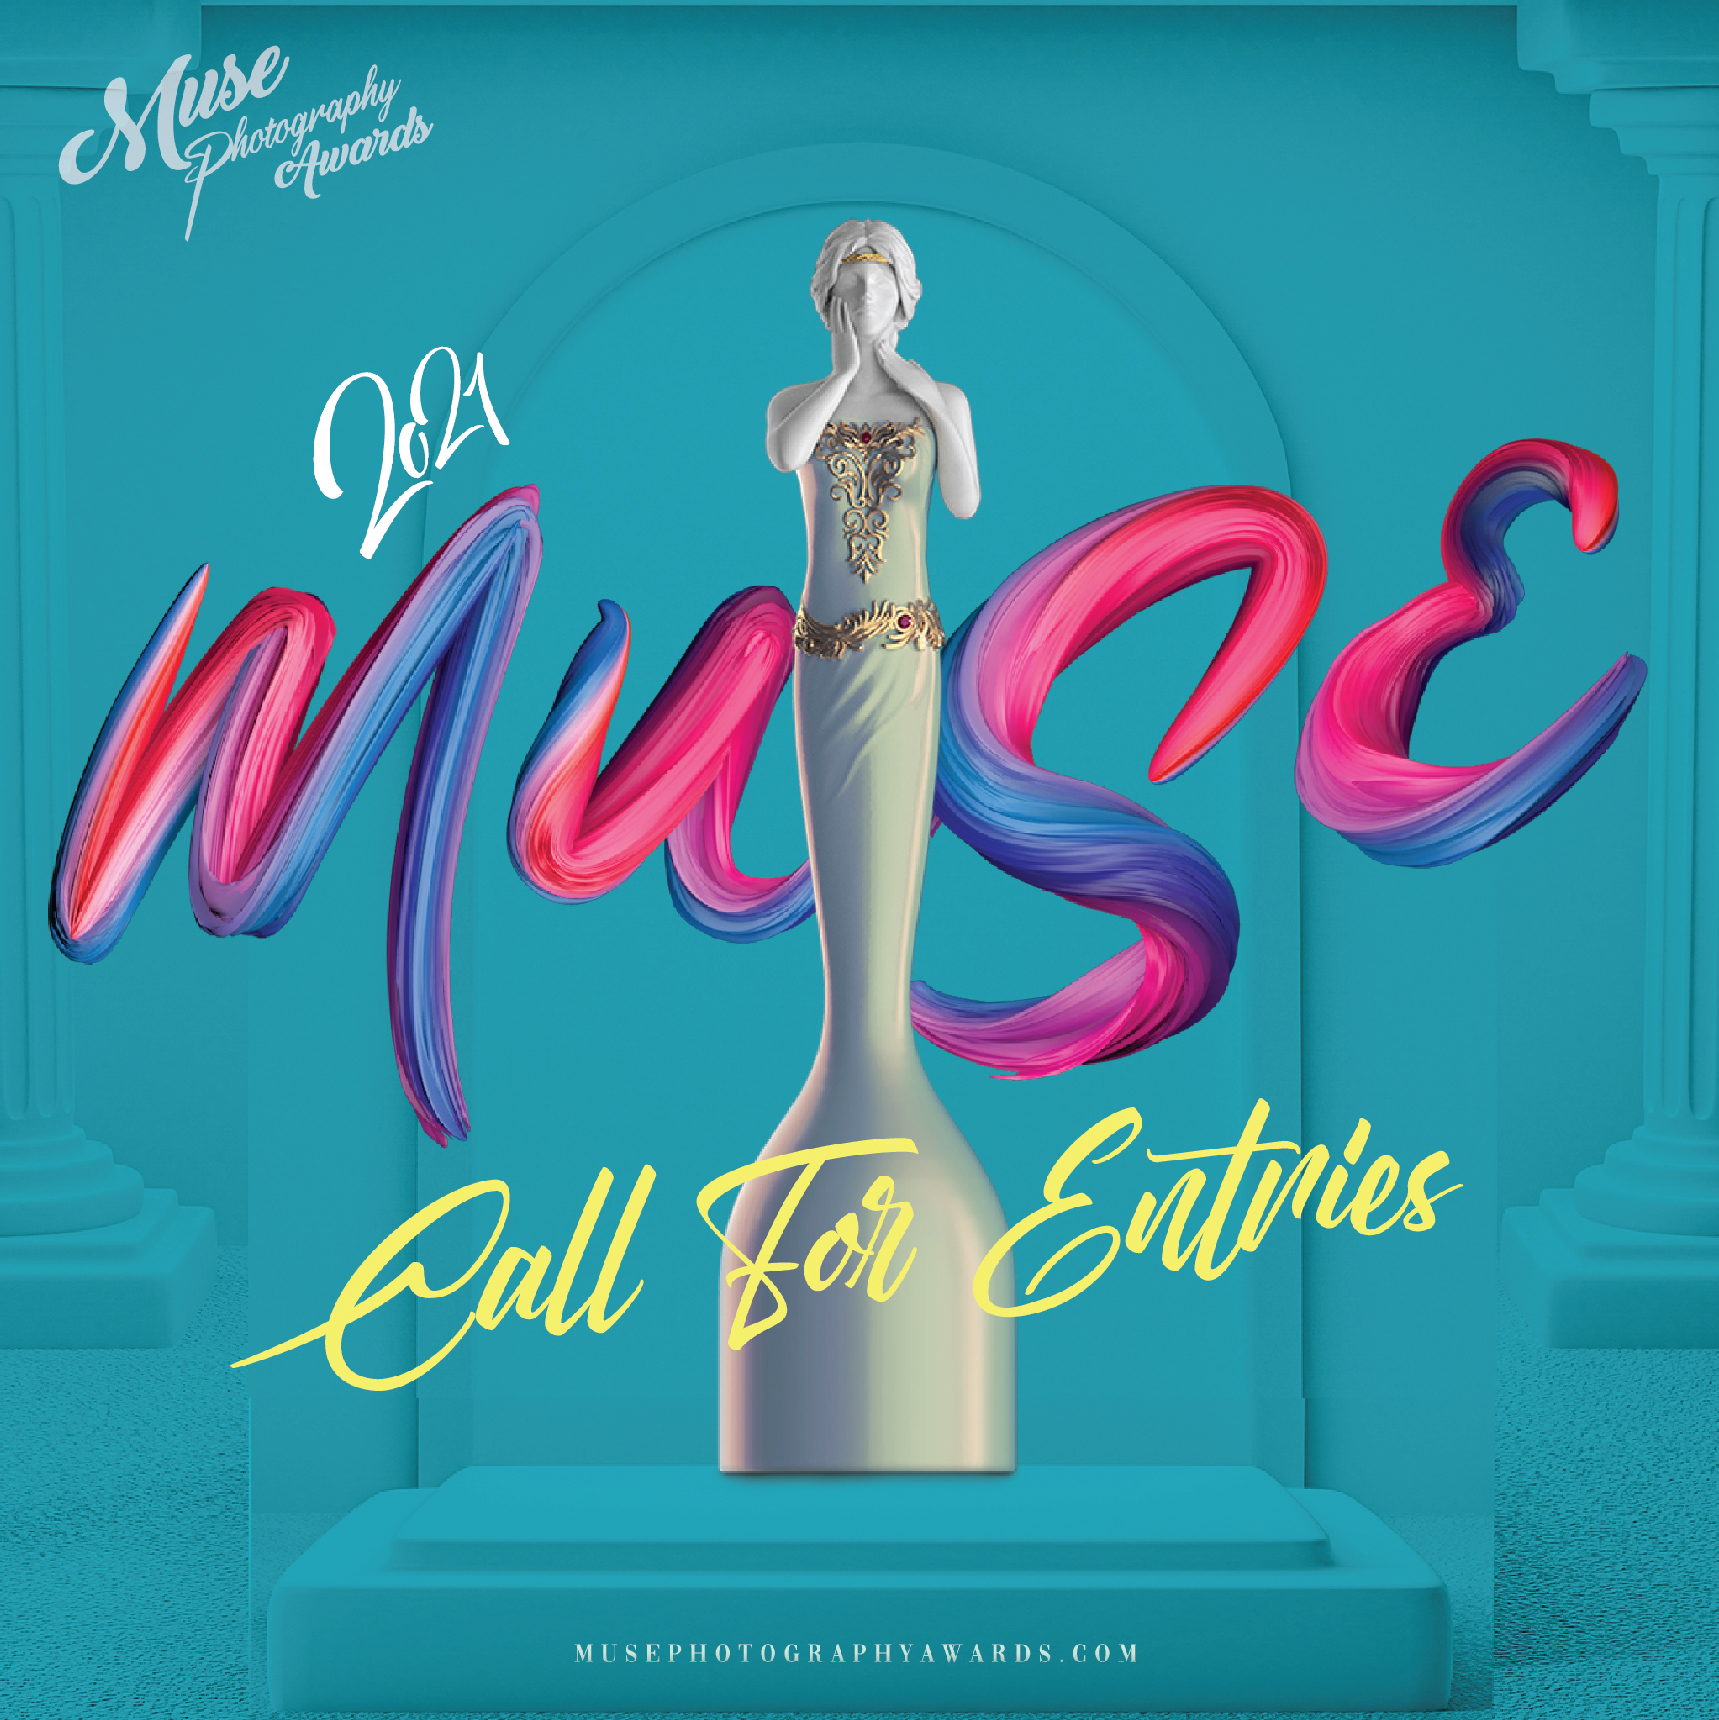 MUSE Photography Awards | 2021 Early bird Call for Entries